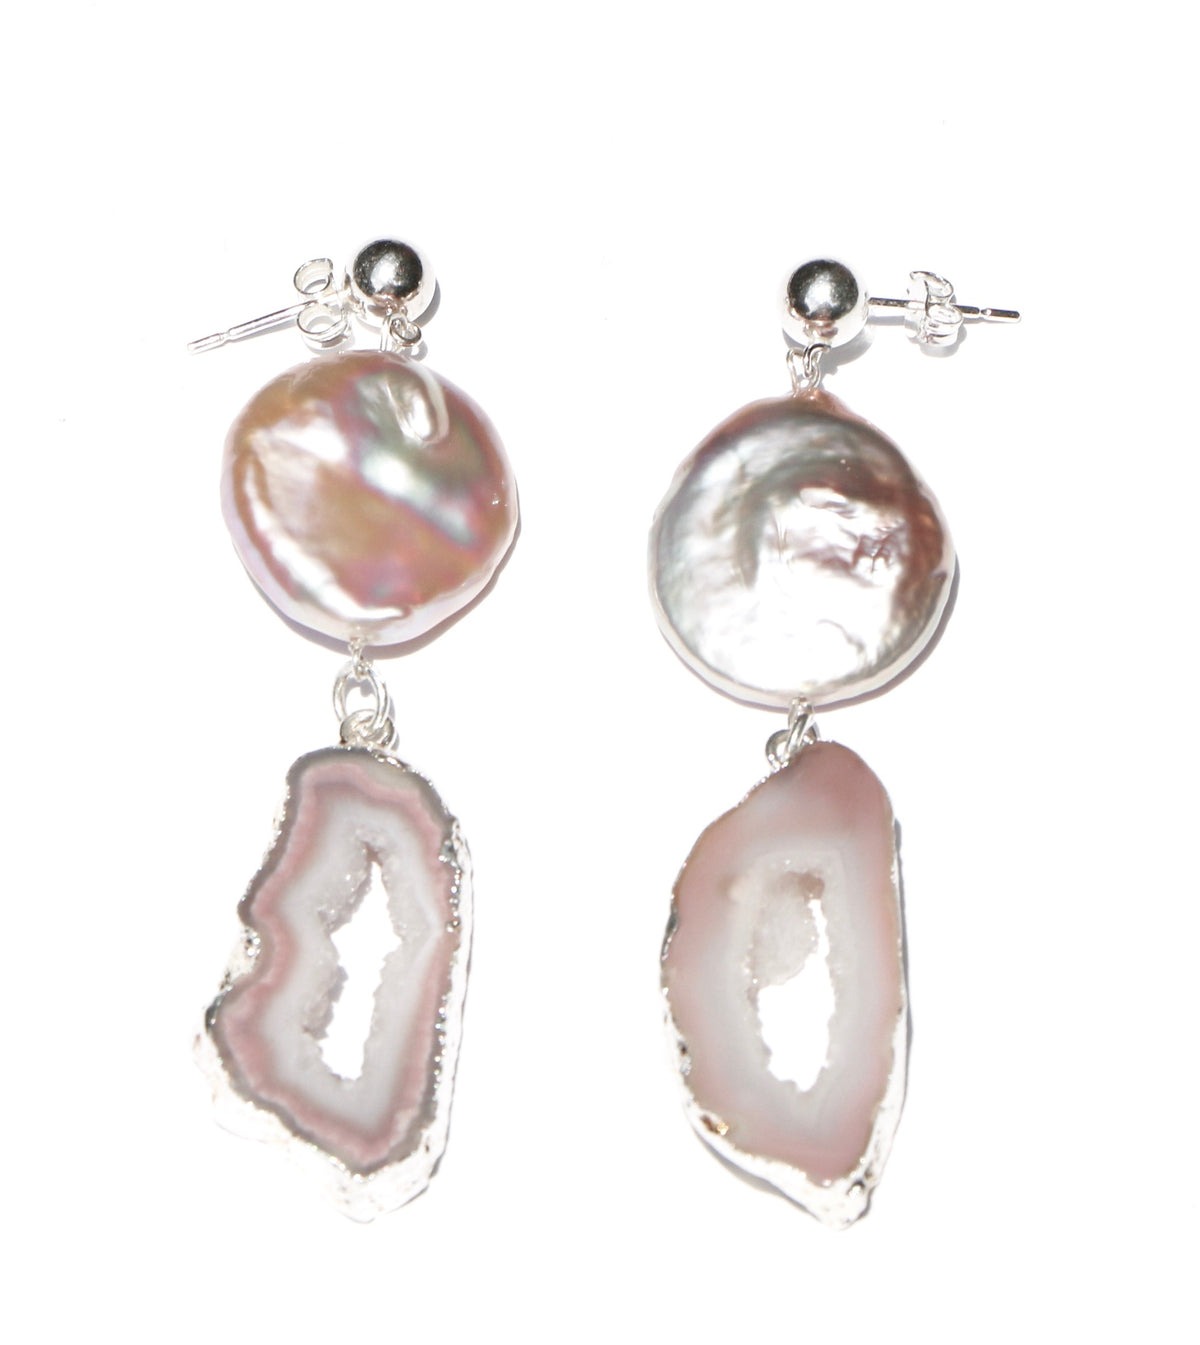 PINK DRUSY W/ LARGE PEARL EARRINGS